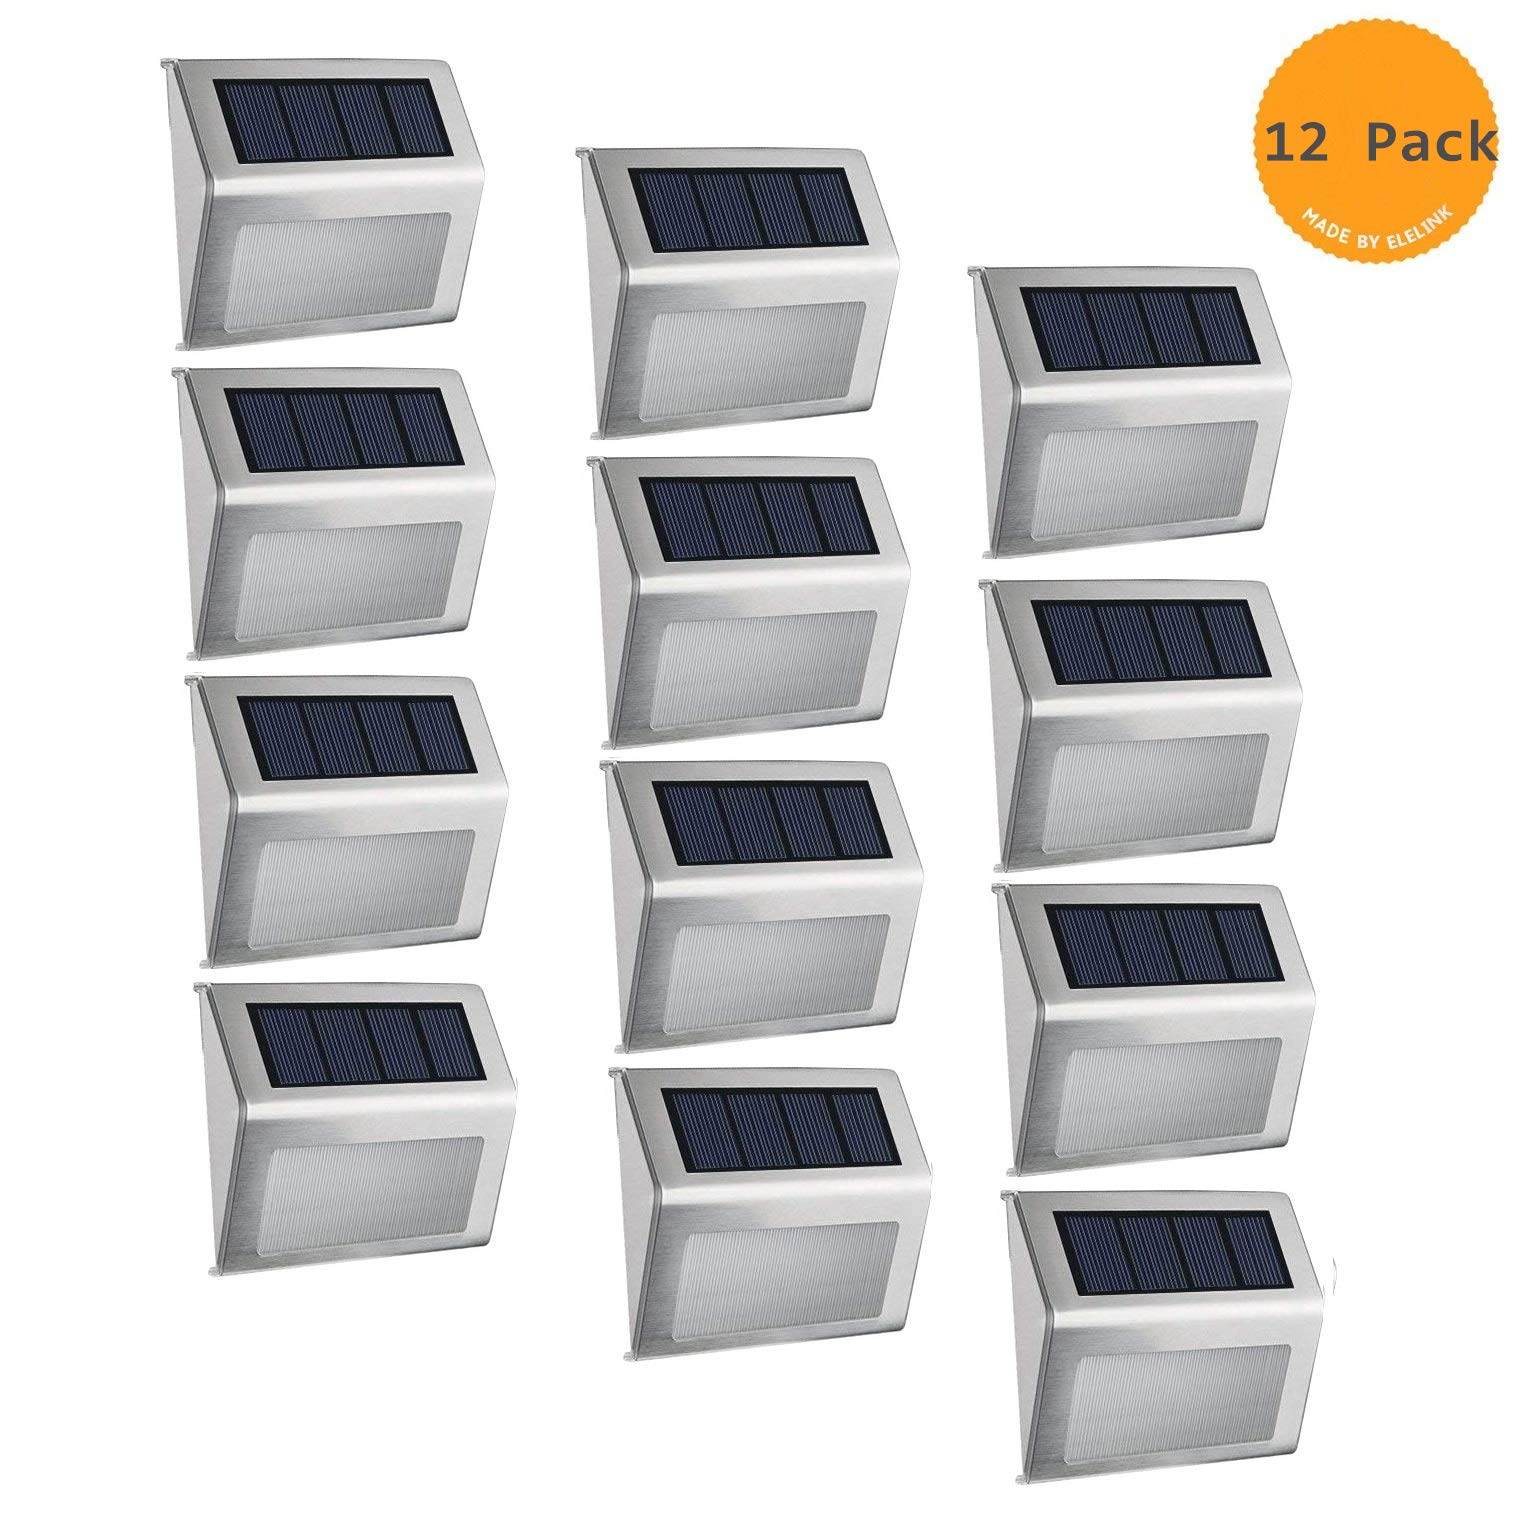 Solar Fence Post Lights,Elelink Outdoor Stainless Steel LED Solar Step Lamp; Illuminates Stairs/Path/Landscape/Garden/Floor/Wall/Patio Lamp, Waterproof (12 Pack) by ELELINK